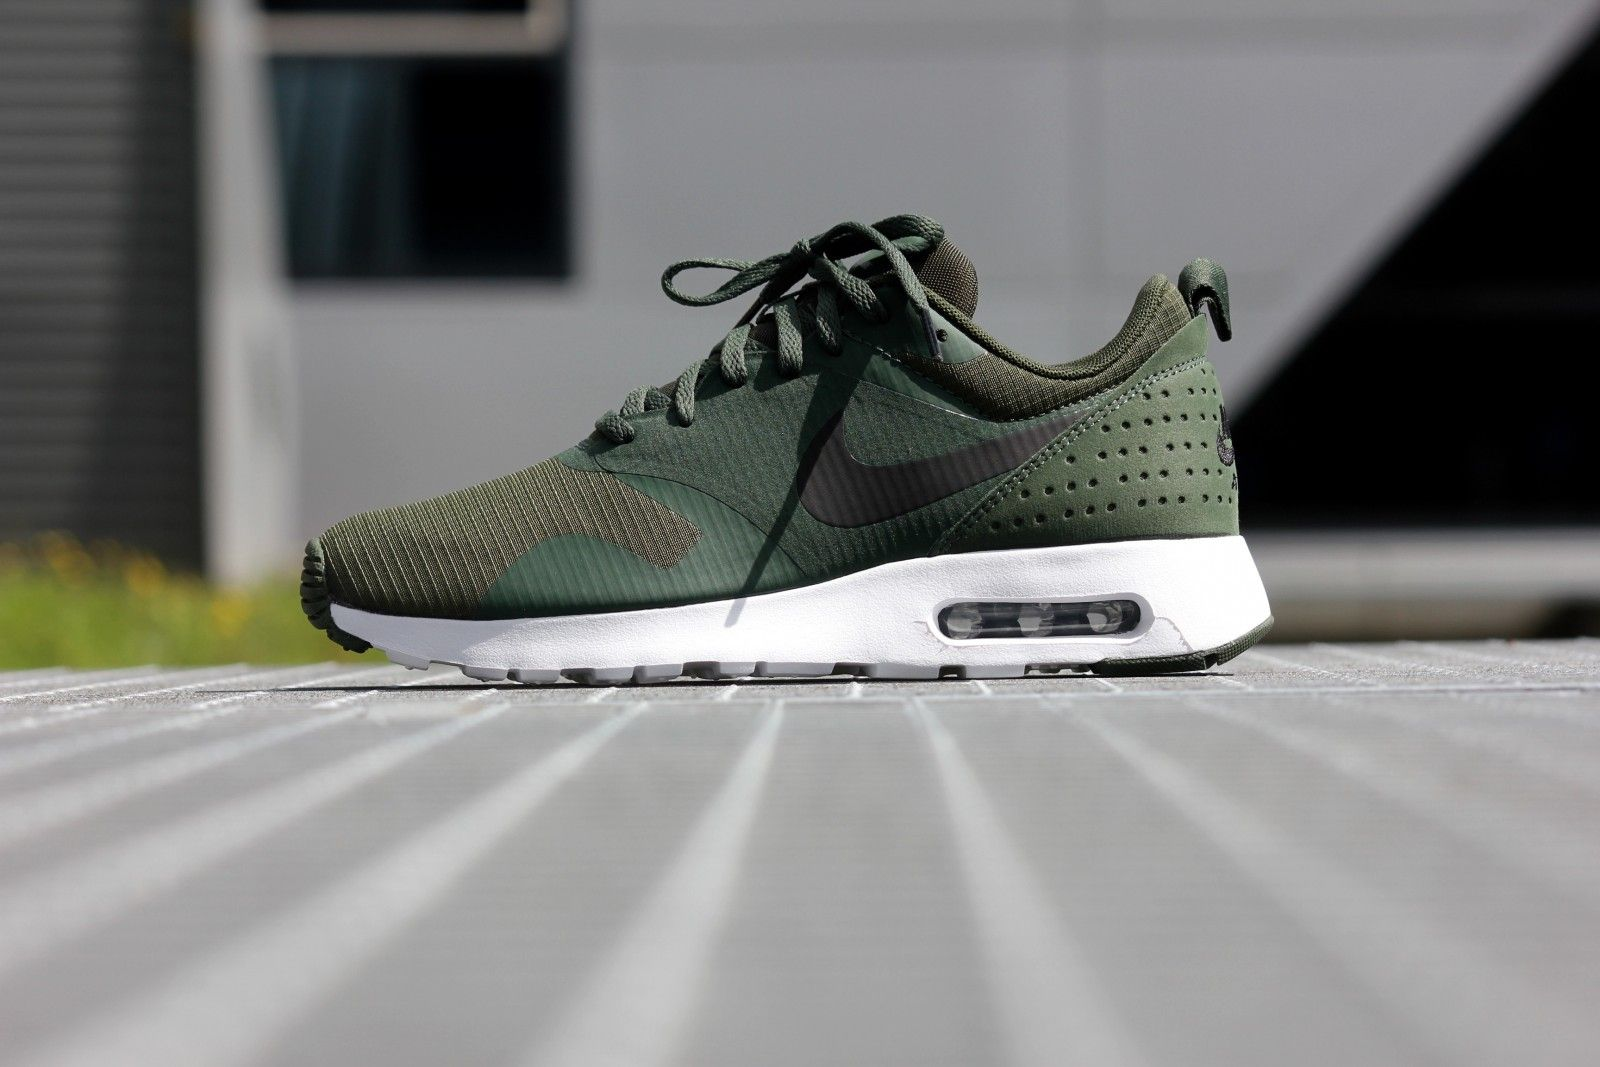 a7f8f01d66 Nike Air Max 1 Tavas Carbon Green/ Black-White - 705149-301 | Nike ...